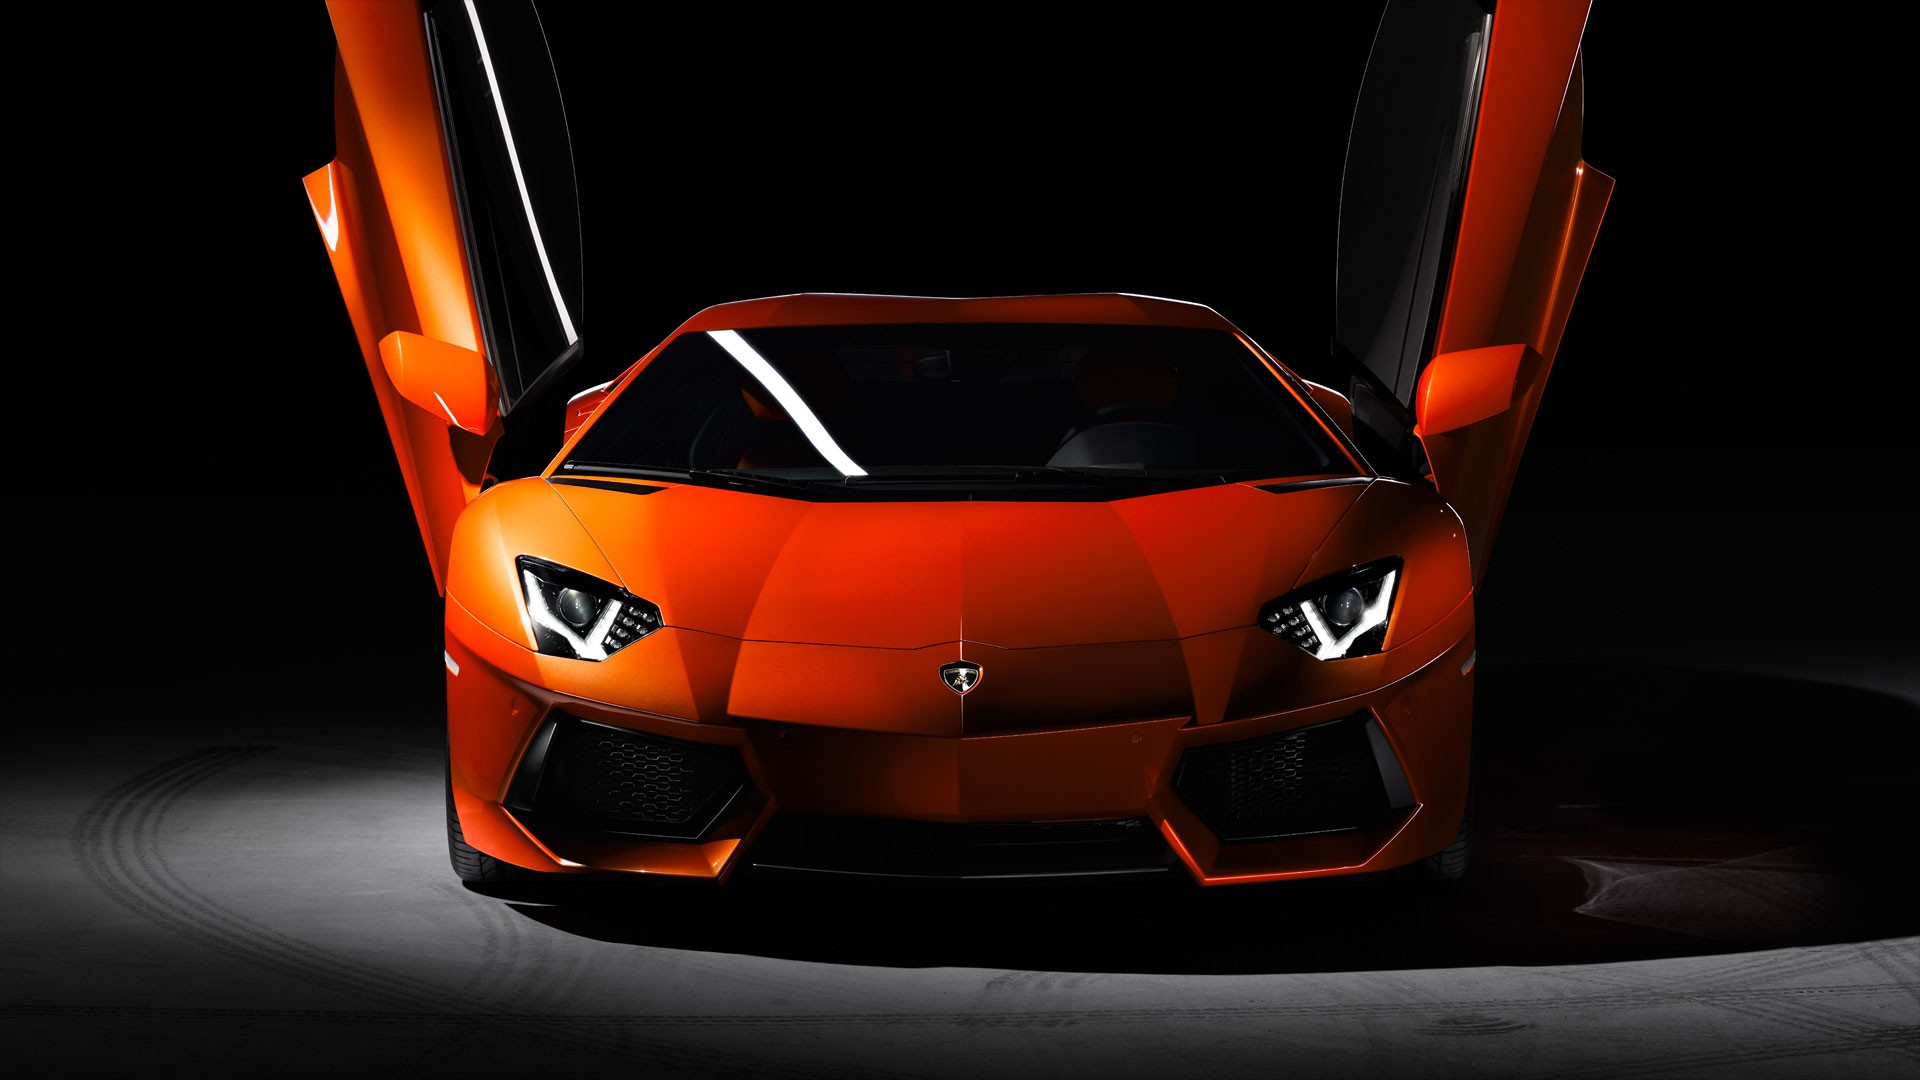 Lamborghini Aventador Wallpaper High Resolution